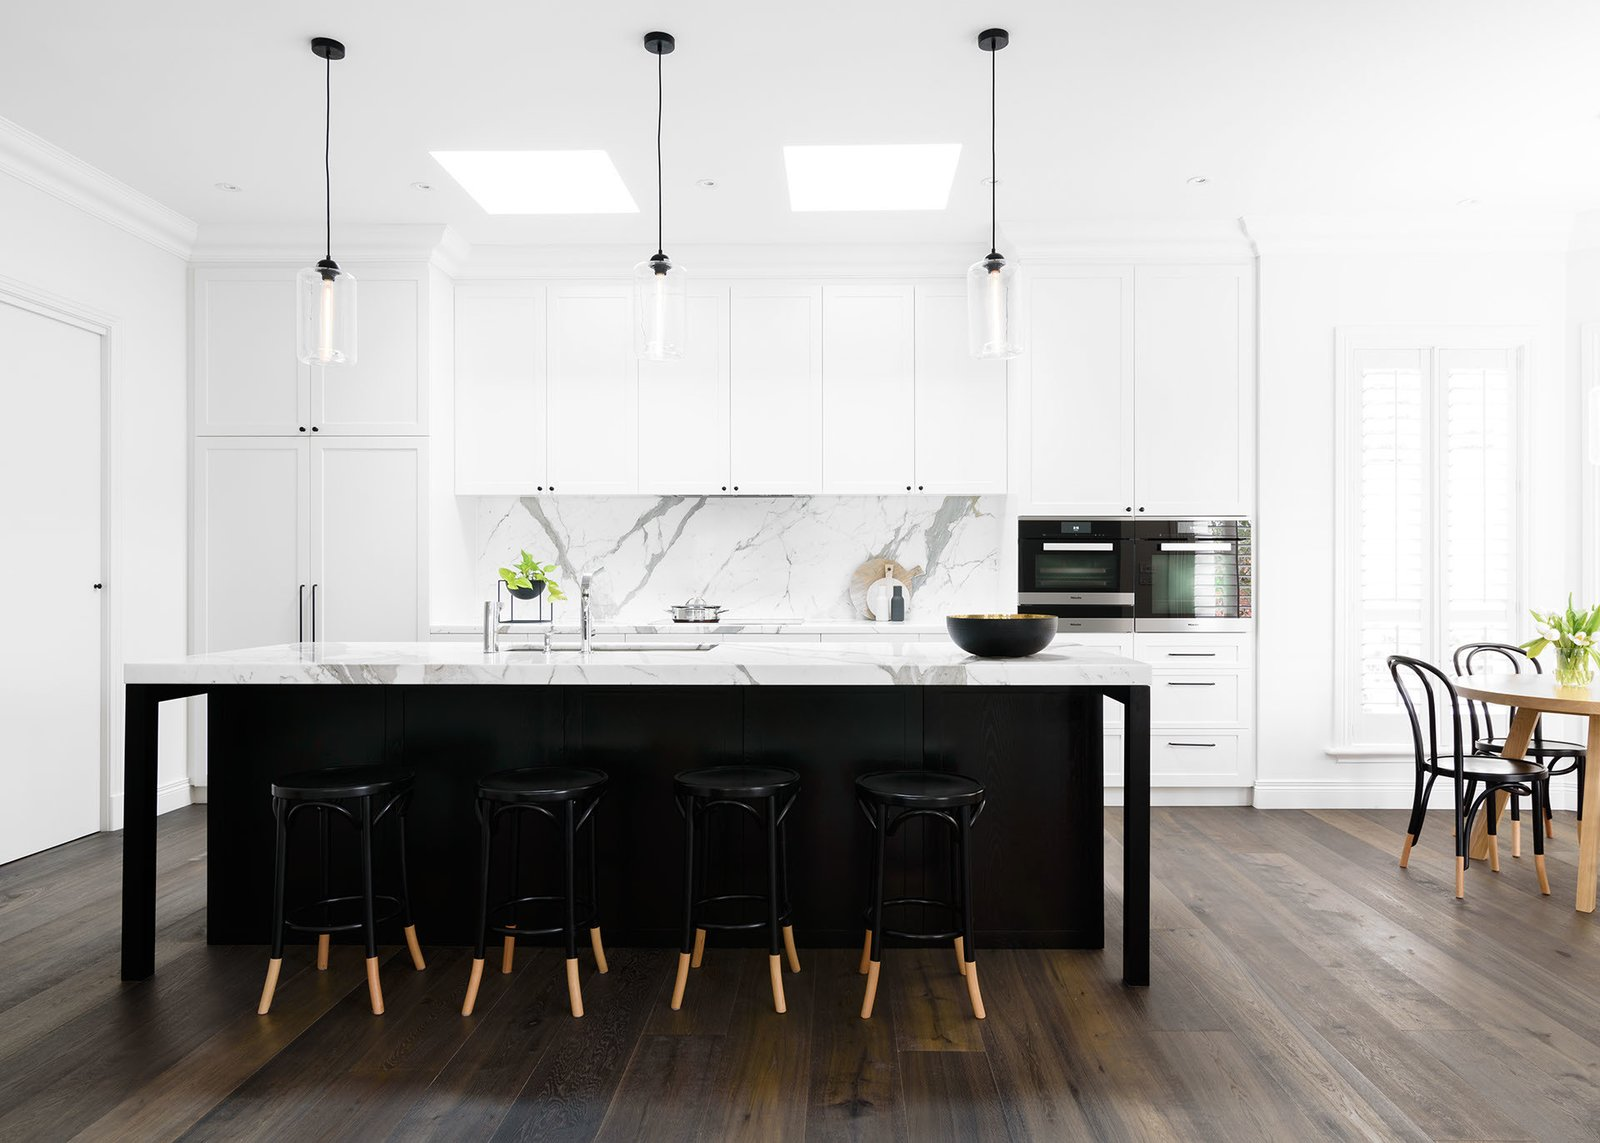 Kitchen, Marble, White, Wood, Medium Hardwood, Stone Slab, Pendant, Ceiling, Recessed, Dark Hardwood, Wall Oven, Cooktops, Range, Drop In, and Undermount Kitchen  Kitchen Drop In Pendant Marble Wood Photos from PRK Residence